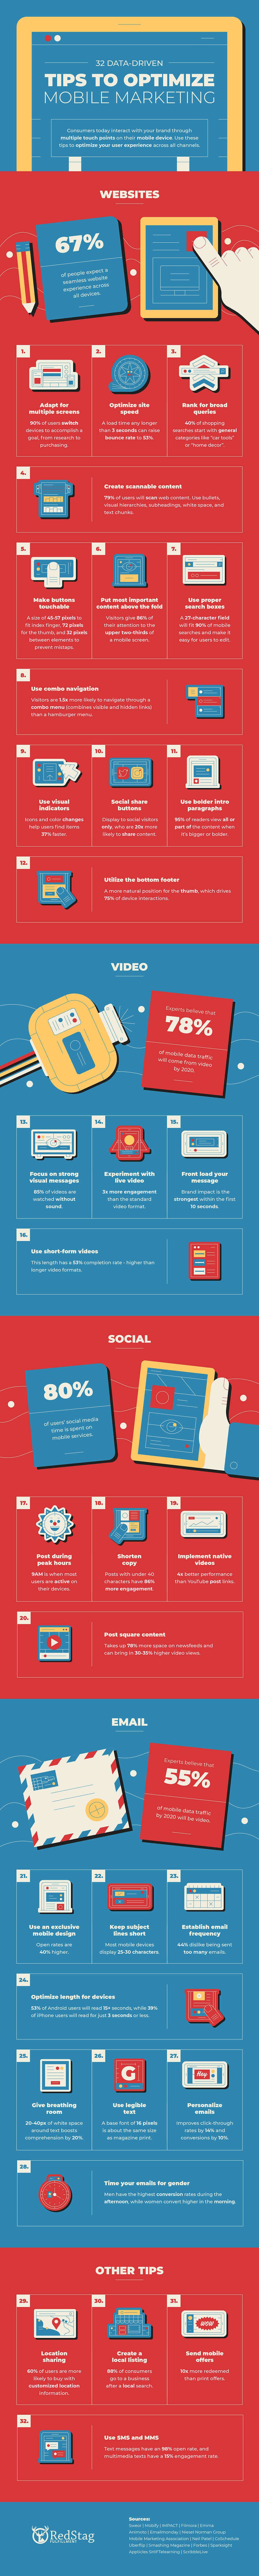 Infographic: 32 data-driven tips to optimize mobile marketing